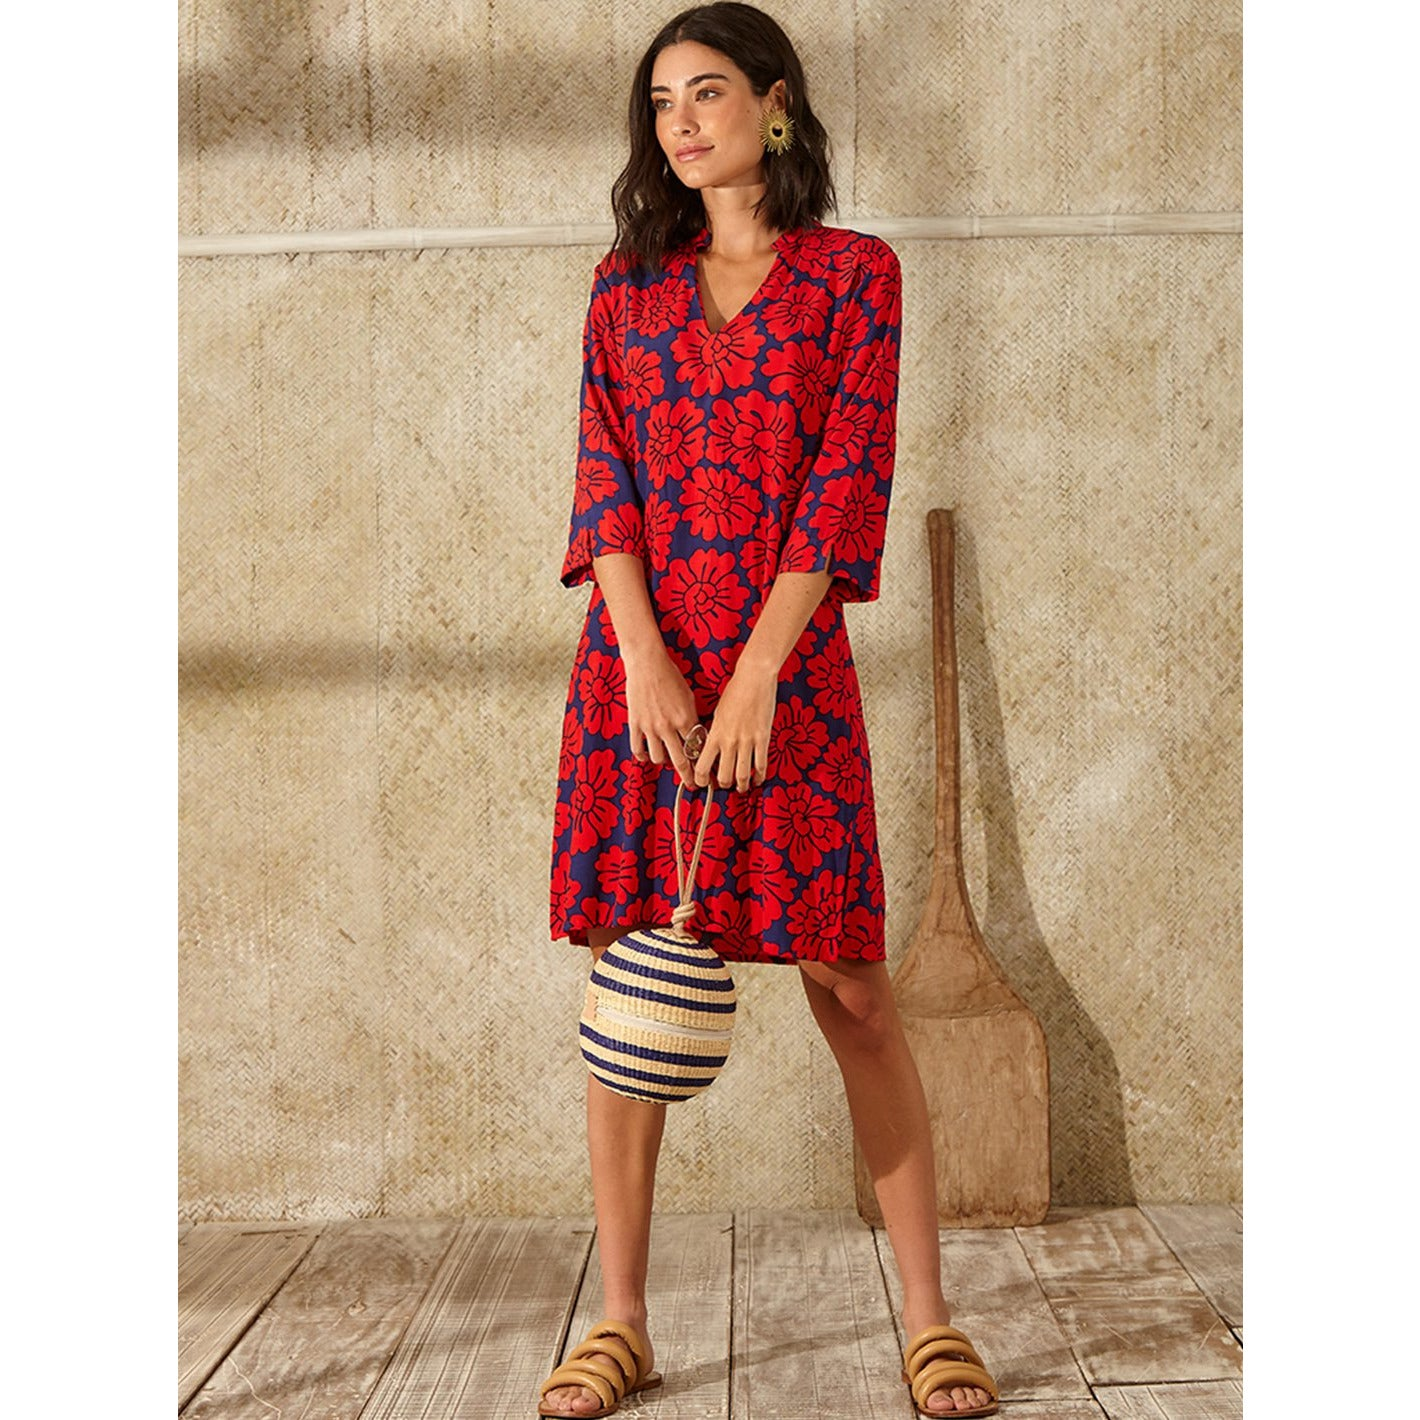 Totem Hilo Dress in Mahalo Red